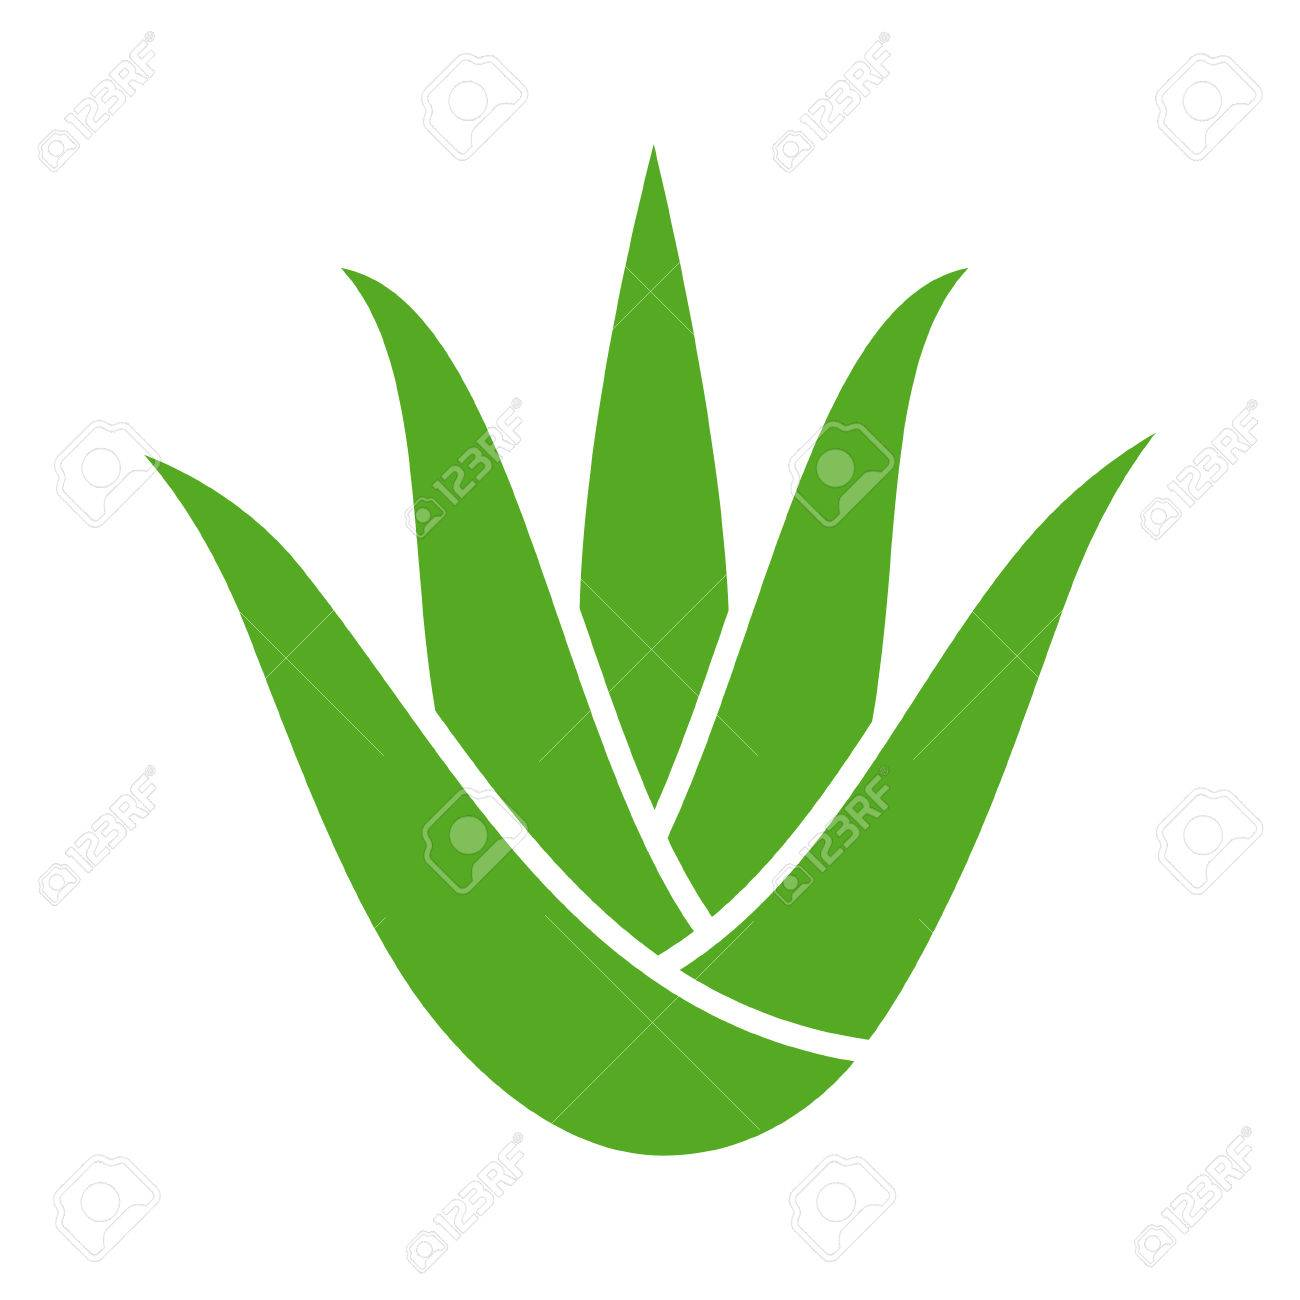 Green aloe vera plant with leaves flat color icon for apps and websites - 66078507